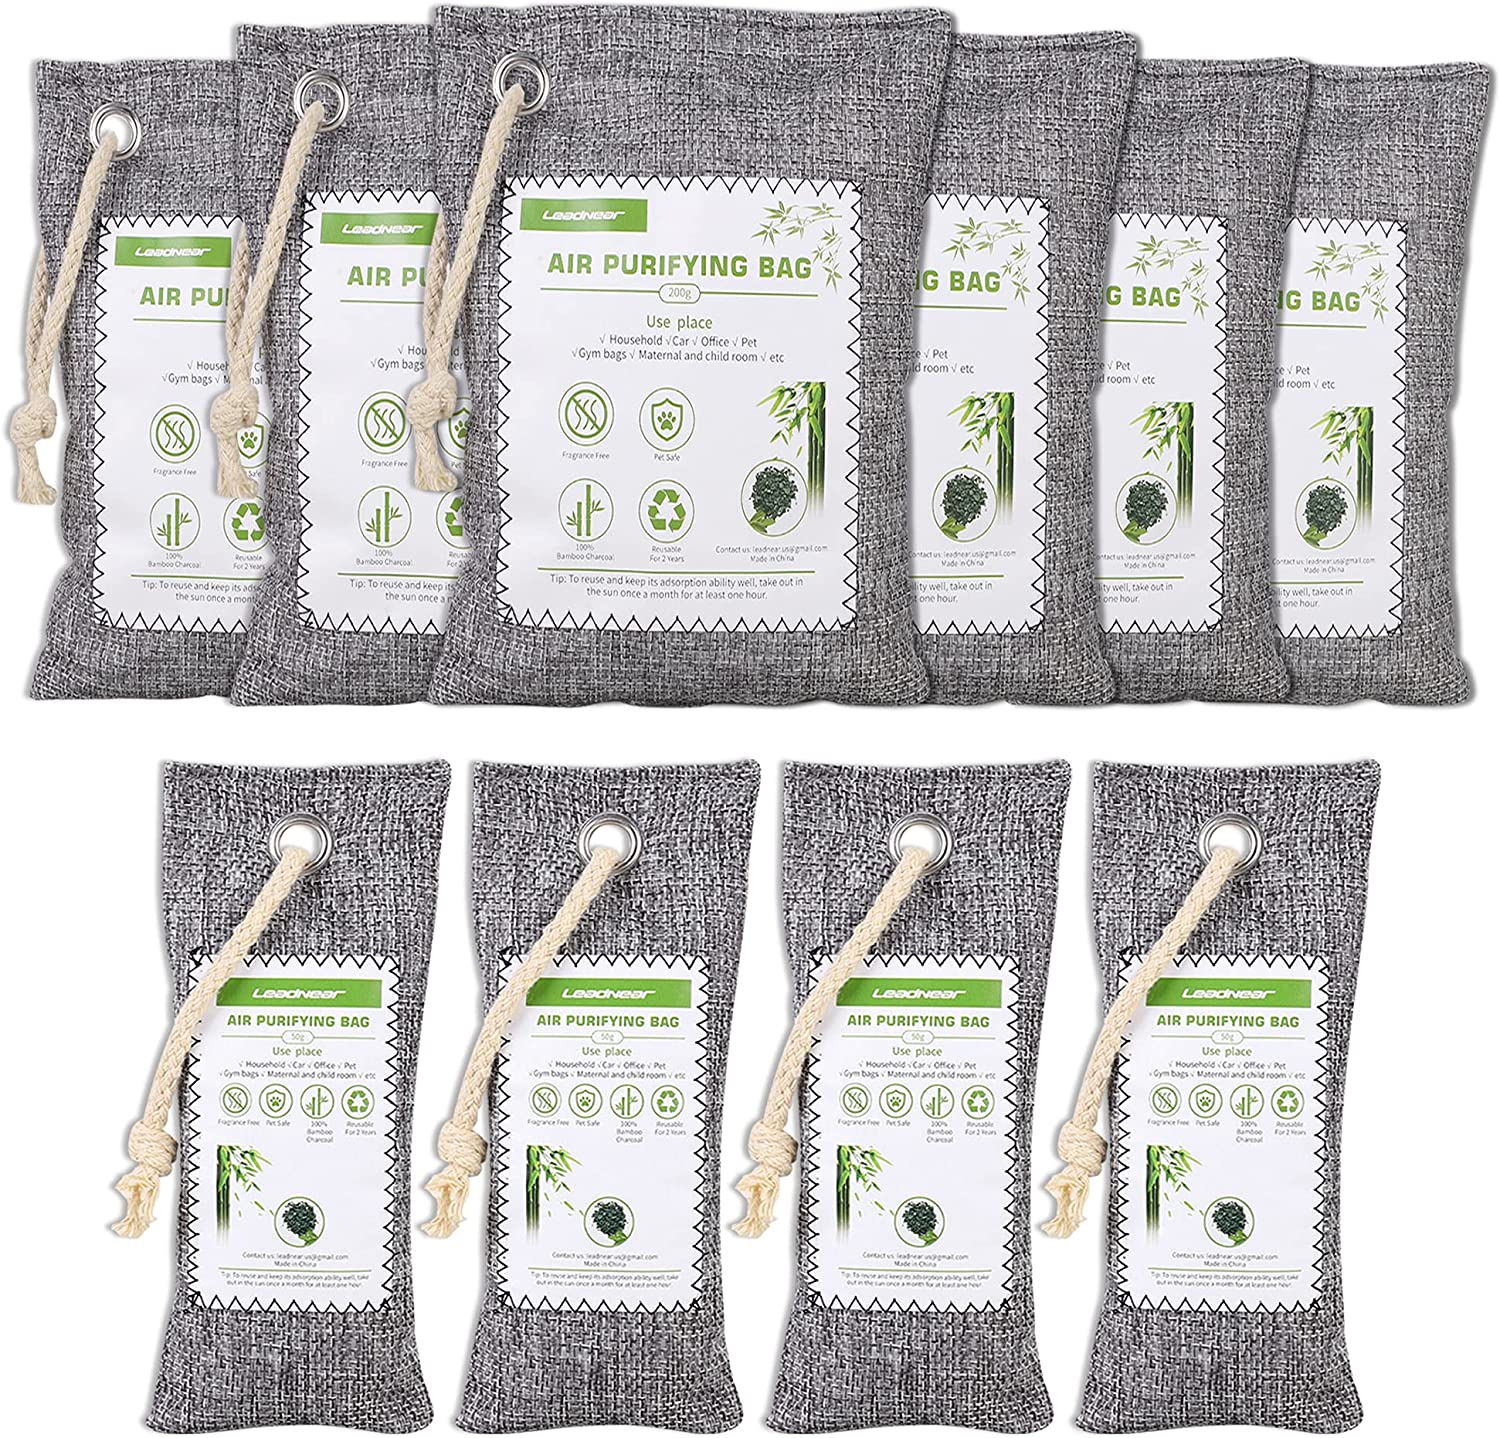 10 Pack Bamboo Charcoal Air Purifying Bags, Activated Charcoal Air Freshener, Nature Fresh Air Purifier Bags, Smell Absorbers for Home, Pet, Closet, Car, Mildew (6x200g, 4x50g) (10)